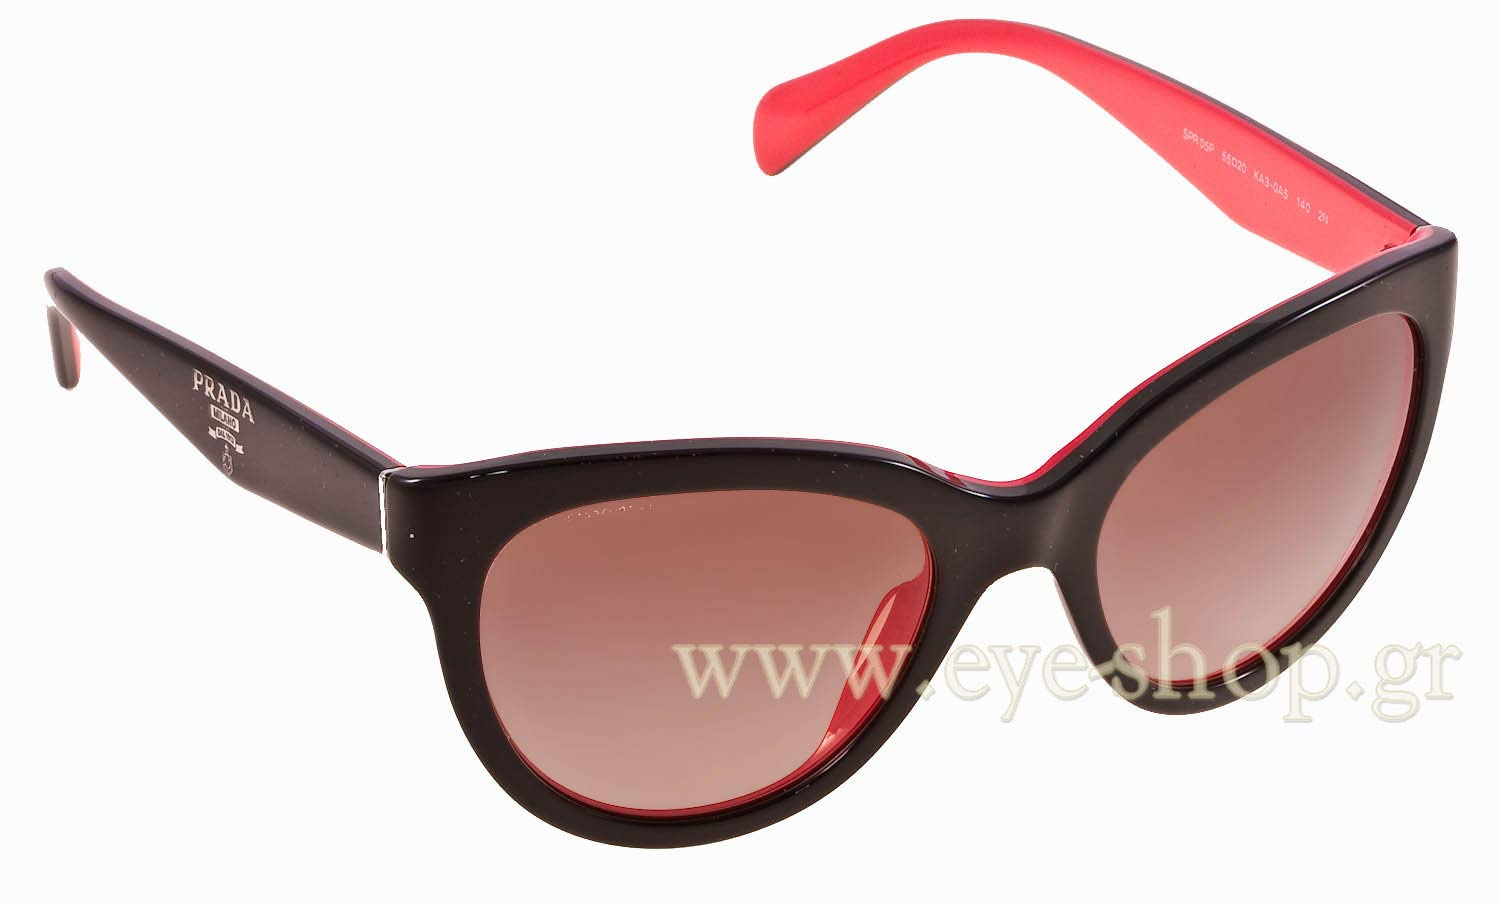 6f772f73ed23 Cateye , color black red plastic , lenses Brown gradient organic plastic.  Enlarge Colors Discontinued. Sunglasses Prada 05PS KA30A5